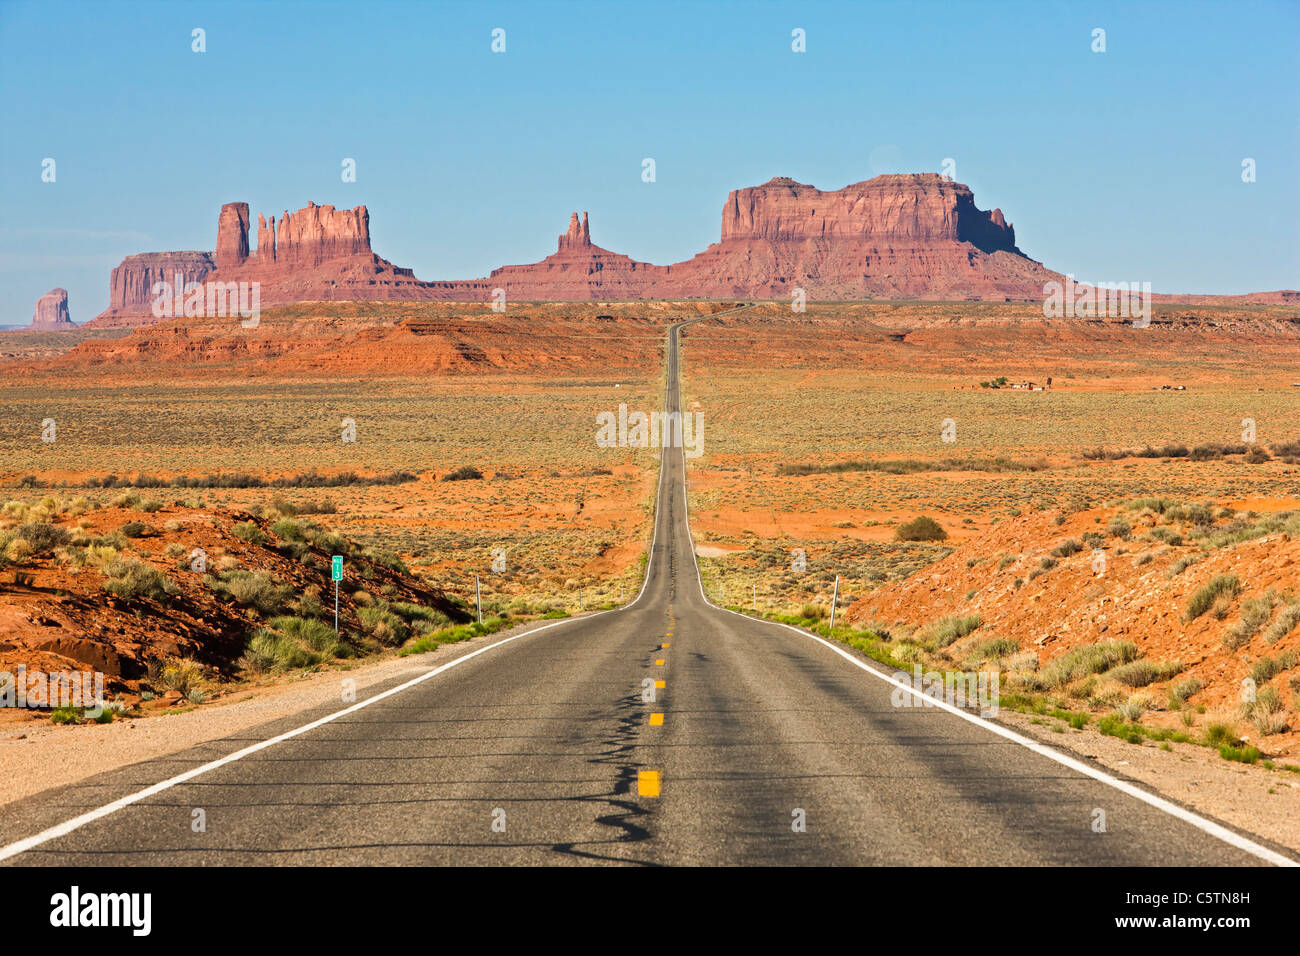 Stati Uniti d'America, Utah, Monument Valley, Highway 163 Immagini Stock